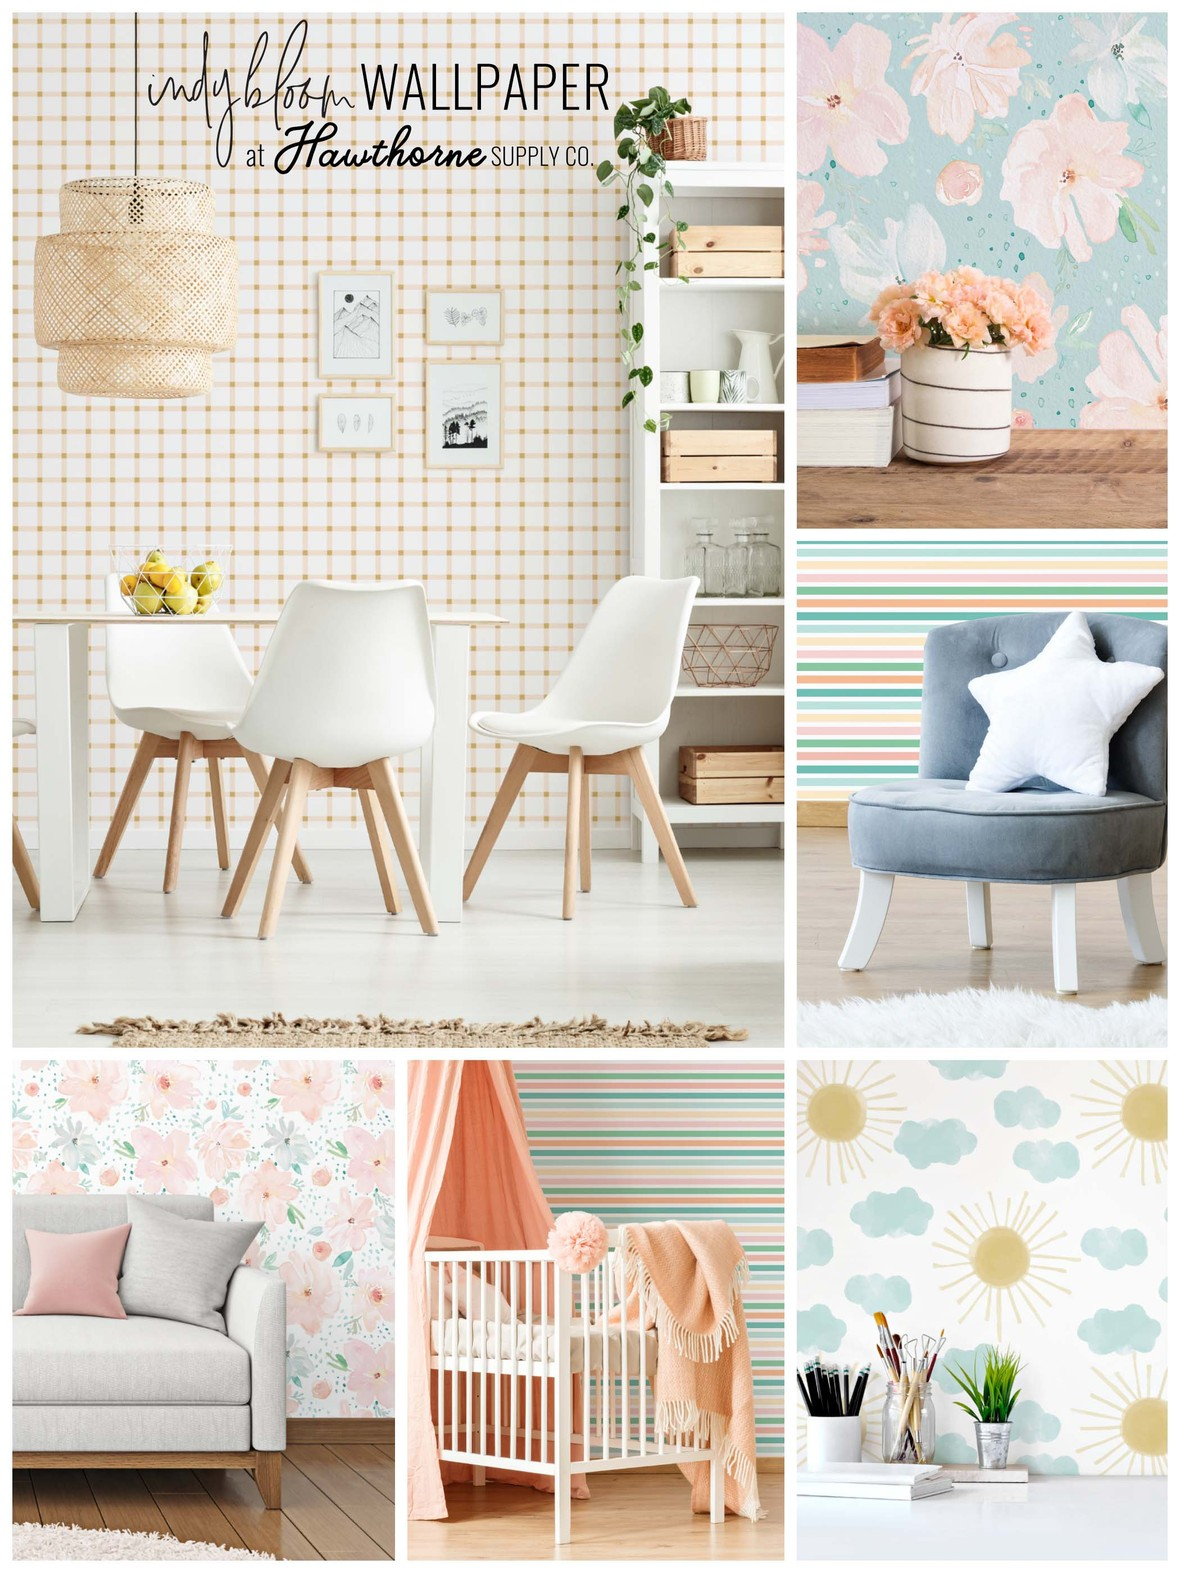 April Showers Wallpaper Indy Bloom at Hawthorne Supply Co